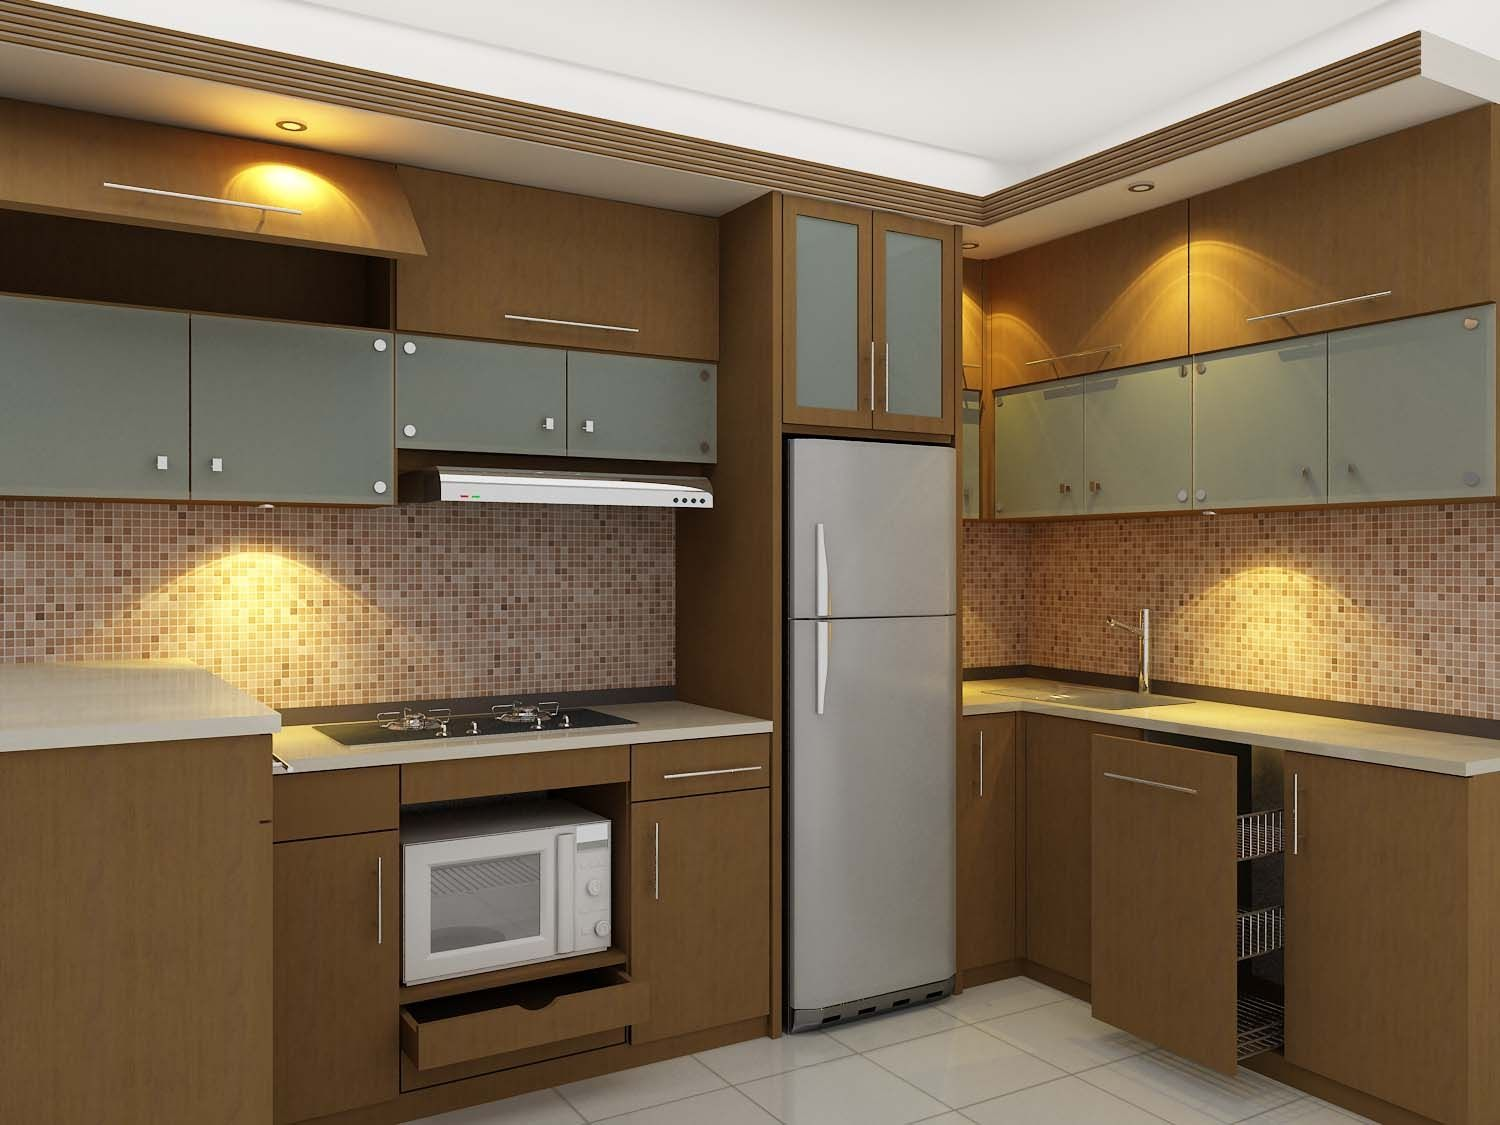 desain kitchen set minimalis rumah pinterest kitchen ForDesign Kitchen Set Minimalis